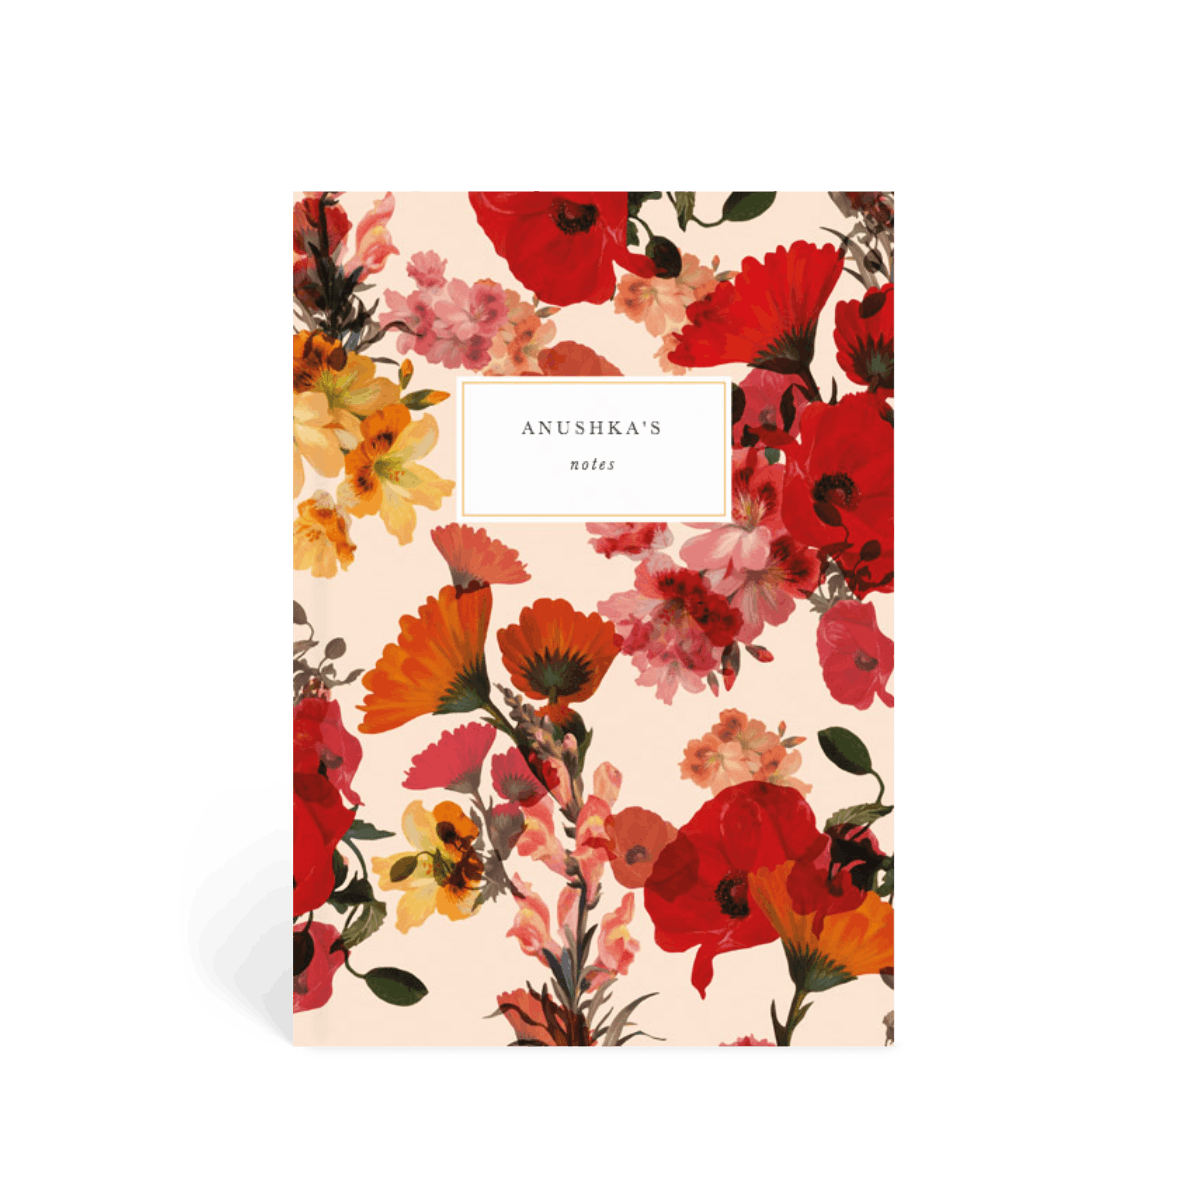 Https%3a%2f%2fwww.papier.com%2fproduct image%2f55501%2f25%2fcordelia floral 13332 front 1585322279.png?ixlib=rb 1.1